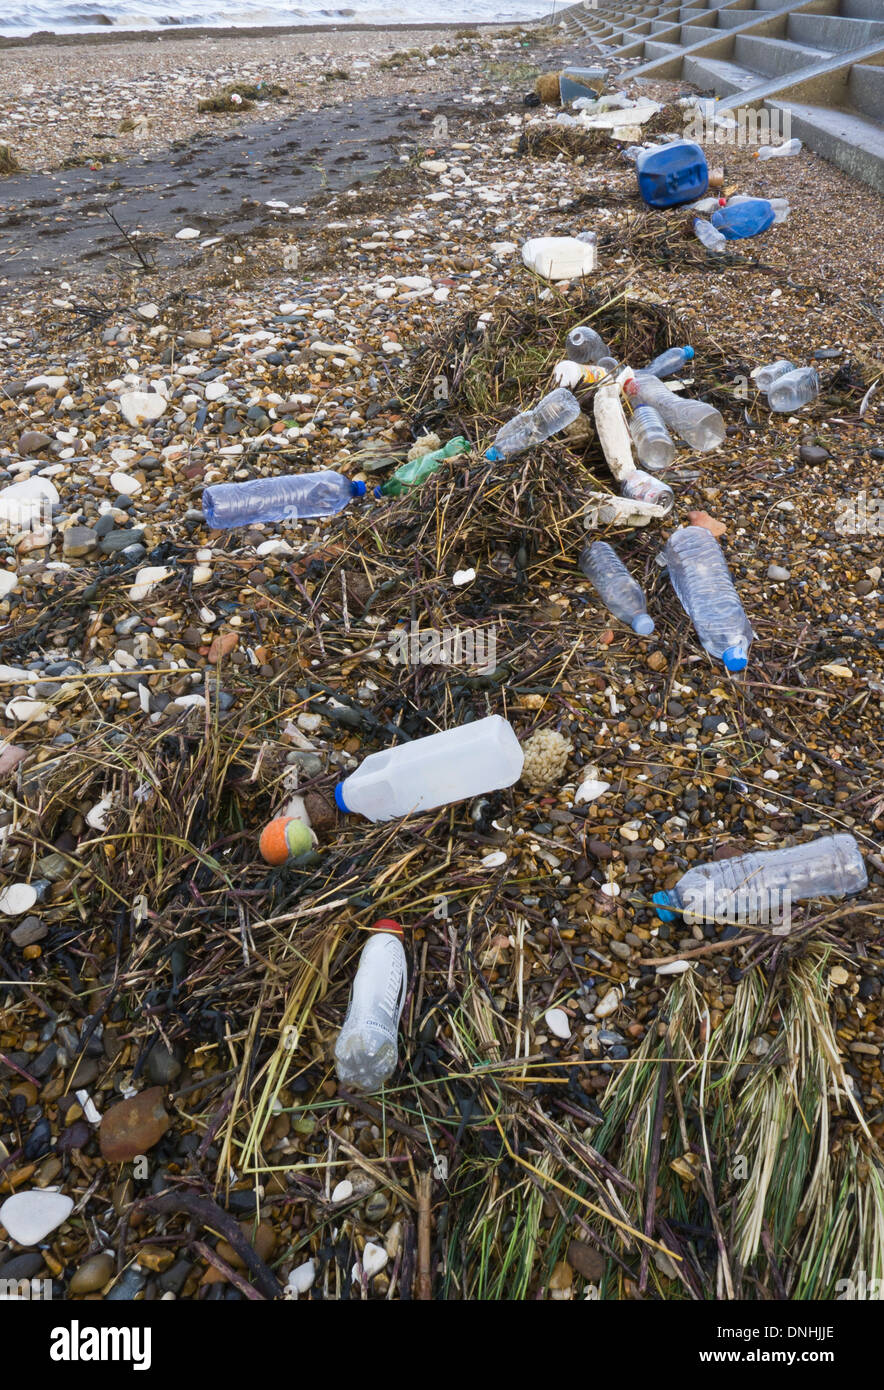 Plastic bottles and containers washed up on a beach in Norfolk. - Stock Image